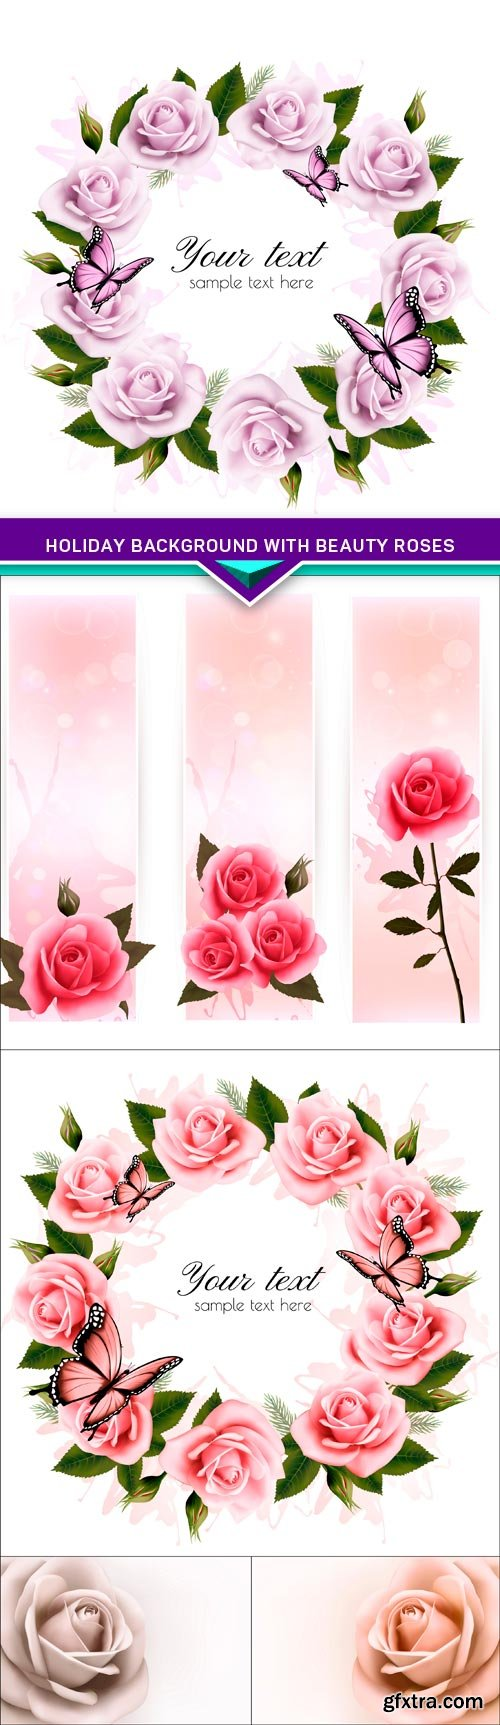 Holiday background with beauty roses 5X EPS